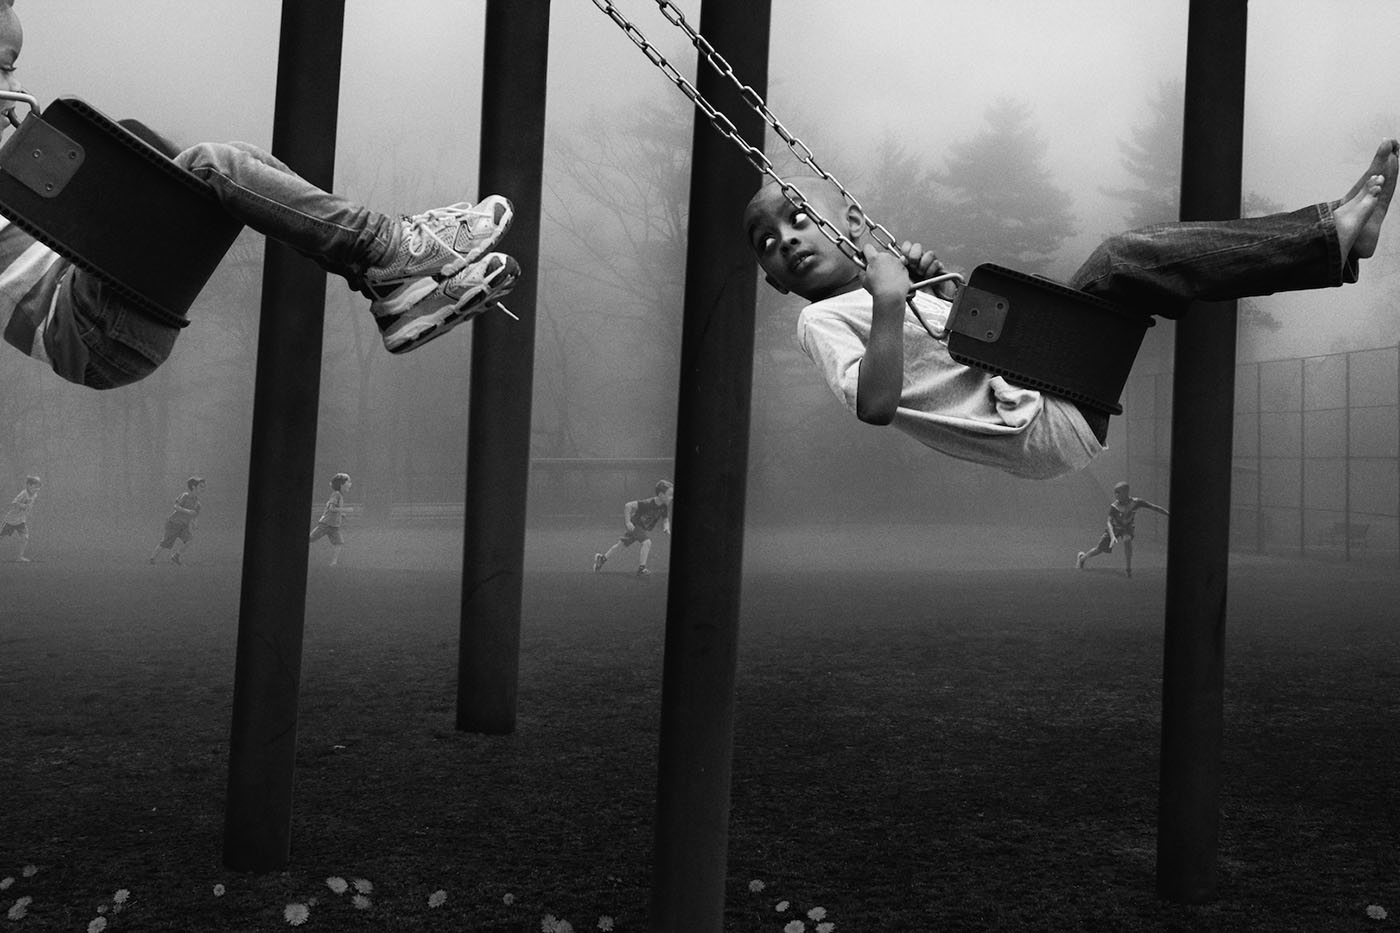 Francisco_Diaz_Deb_Young_USA_New_Zealand_The_Playground_Series_10.jpg